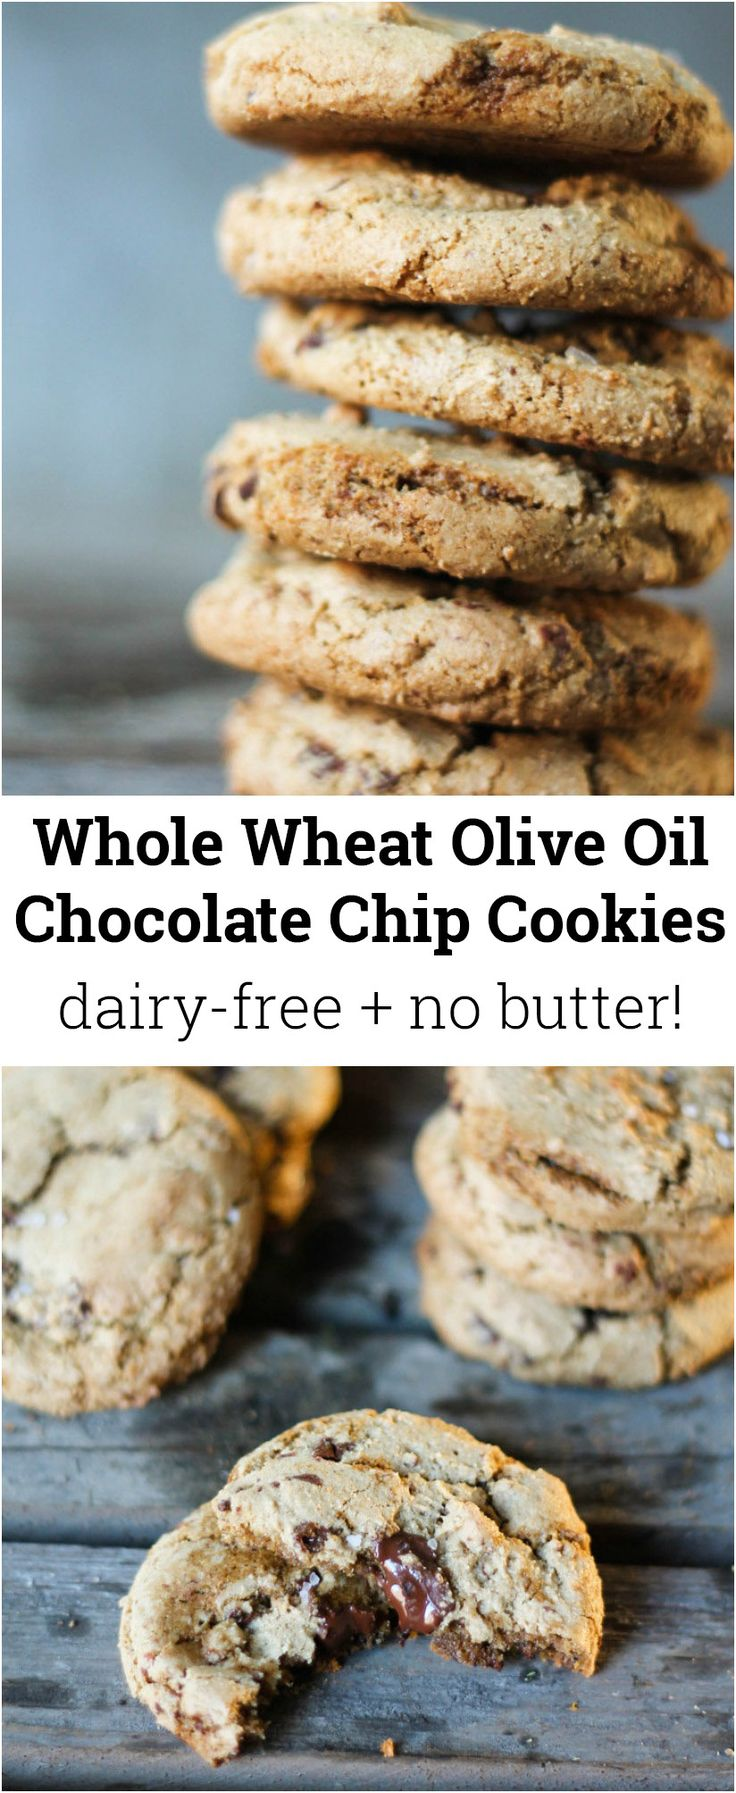 Can You Use Whole Wheat Flour For Chocolate Chip Cookies